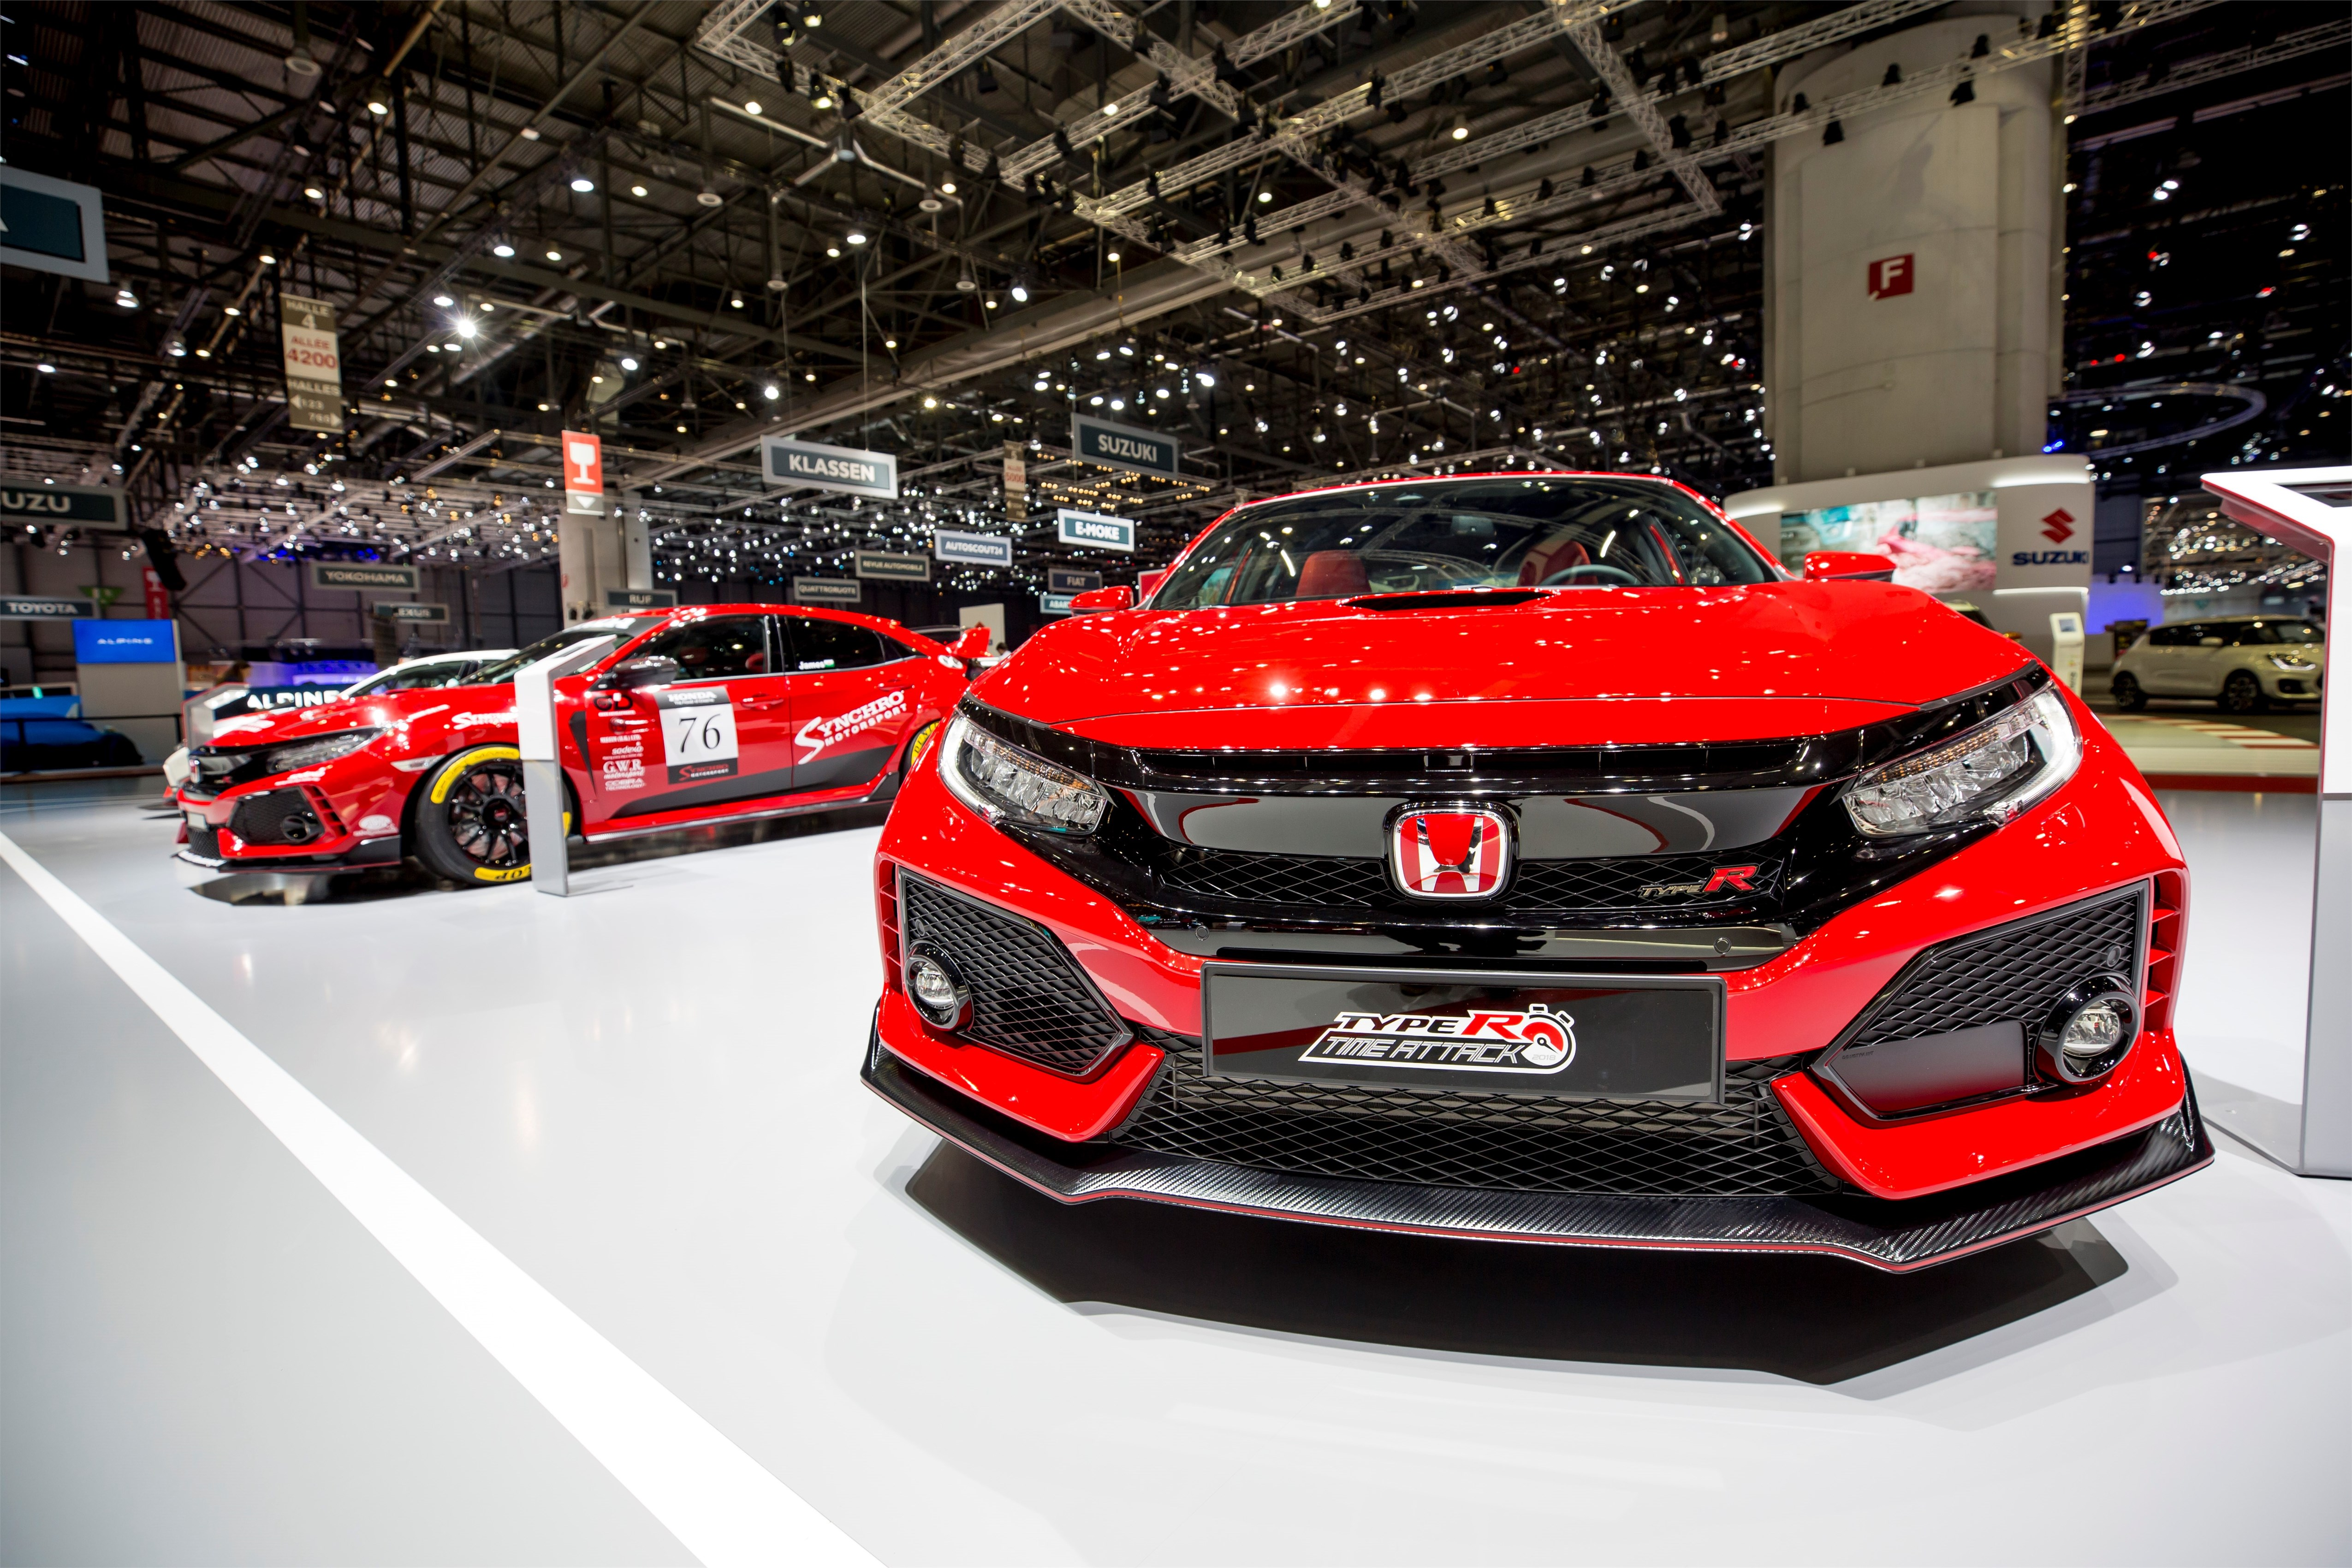 1520944121_127195_Honda_at_Geneva_Motor_Show.jpg?fit=5100%2C3400